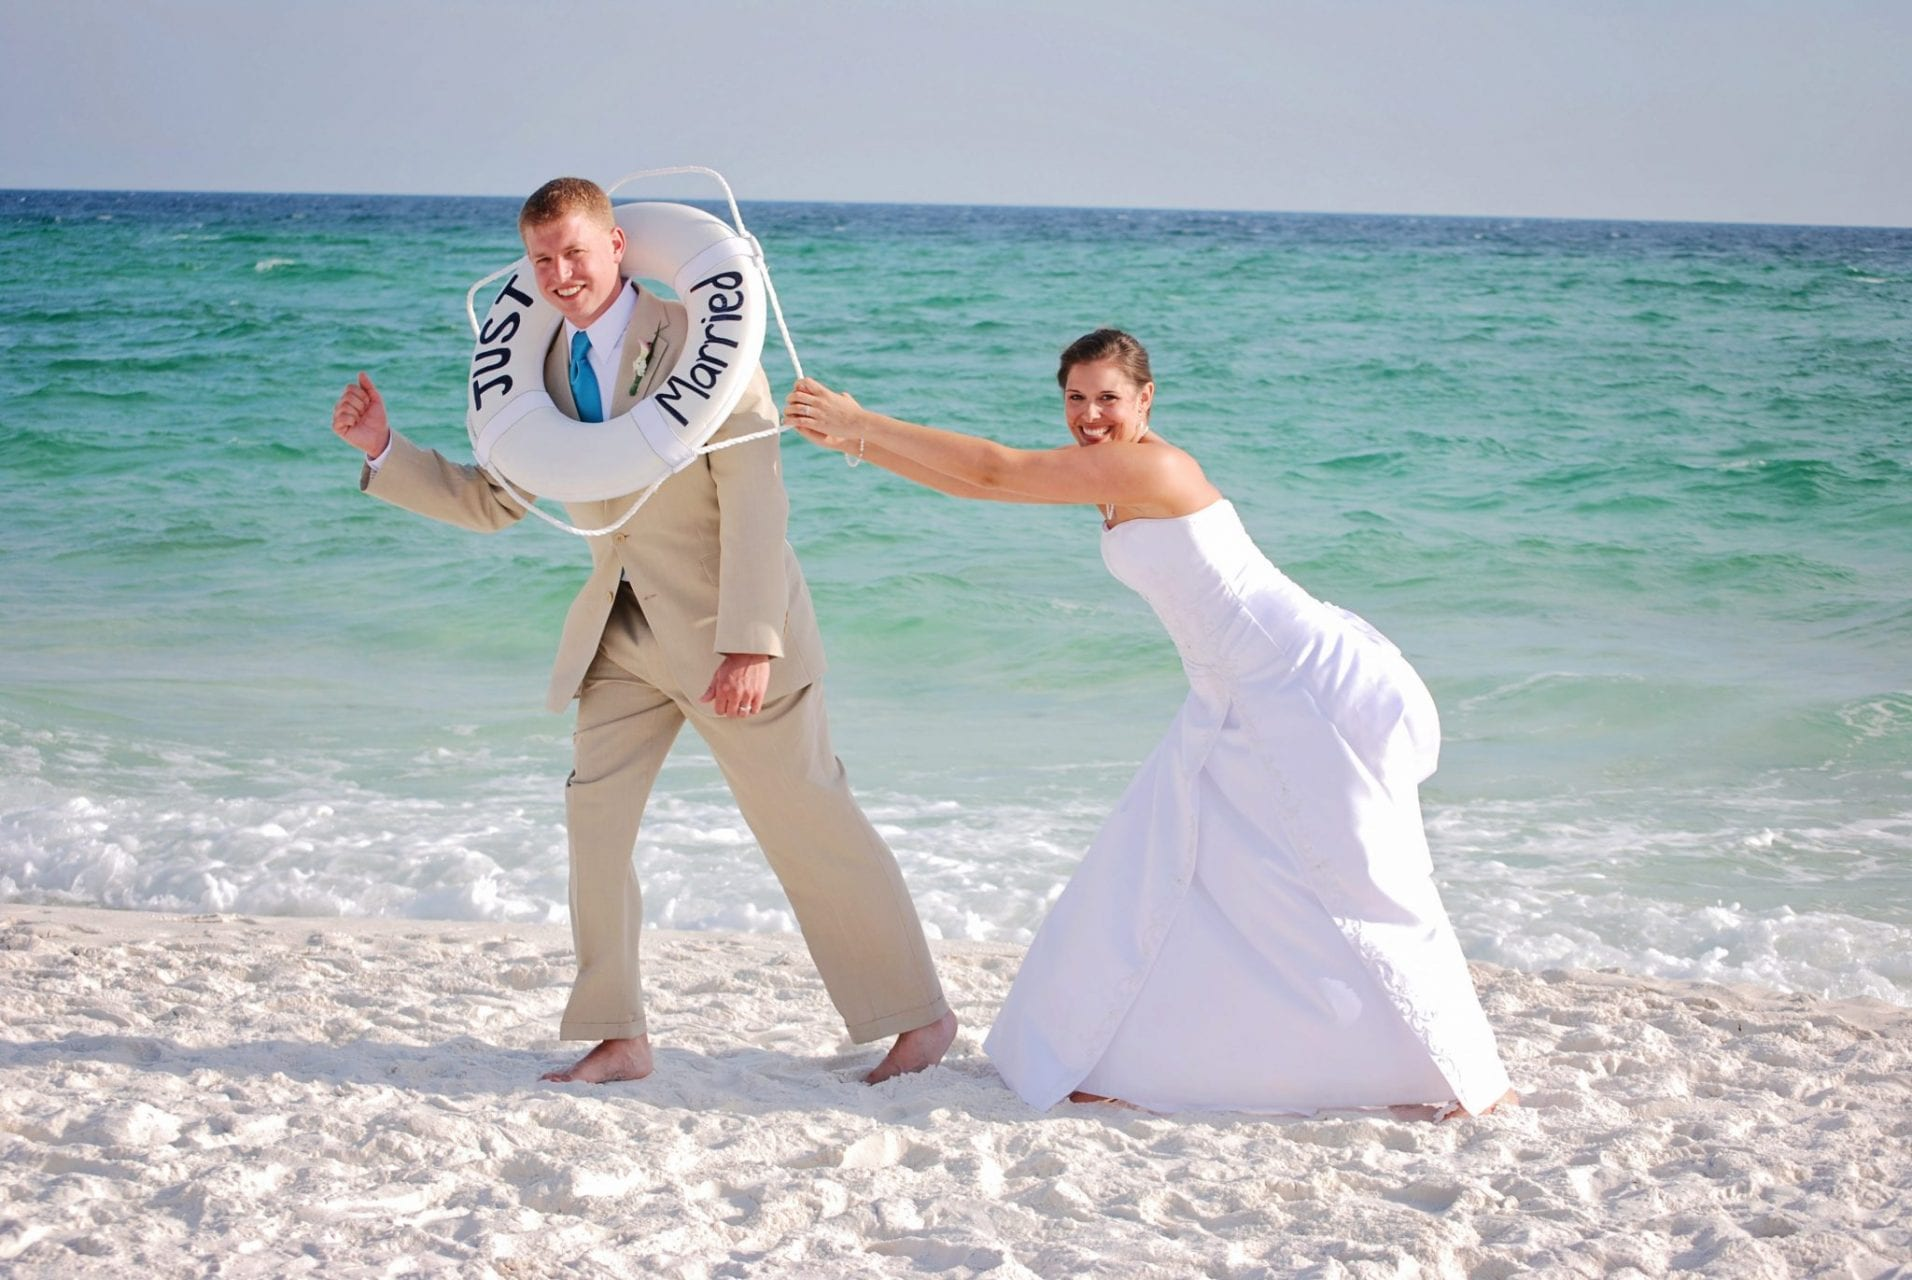 Couple plays with life preserver on Destin beach after wedding